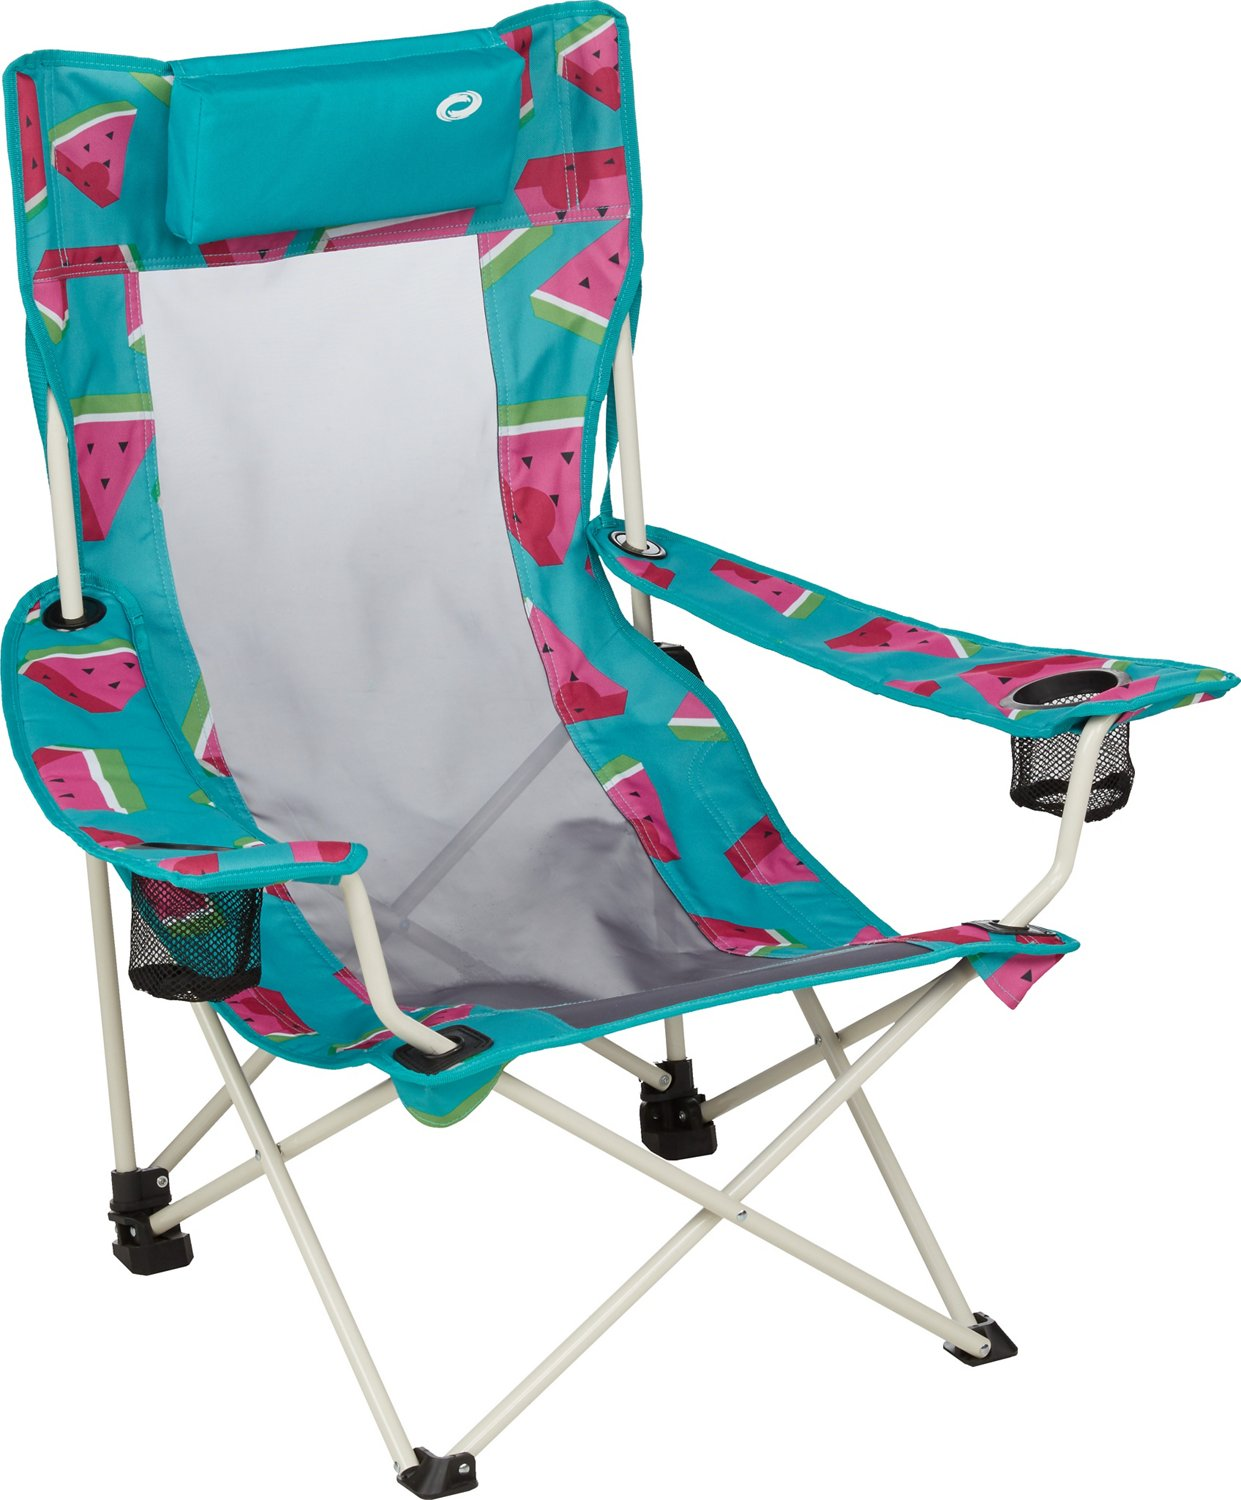 academy beach chairs winnie the pooh high chair banner o rageous quad hover click to enlarge